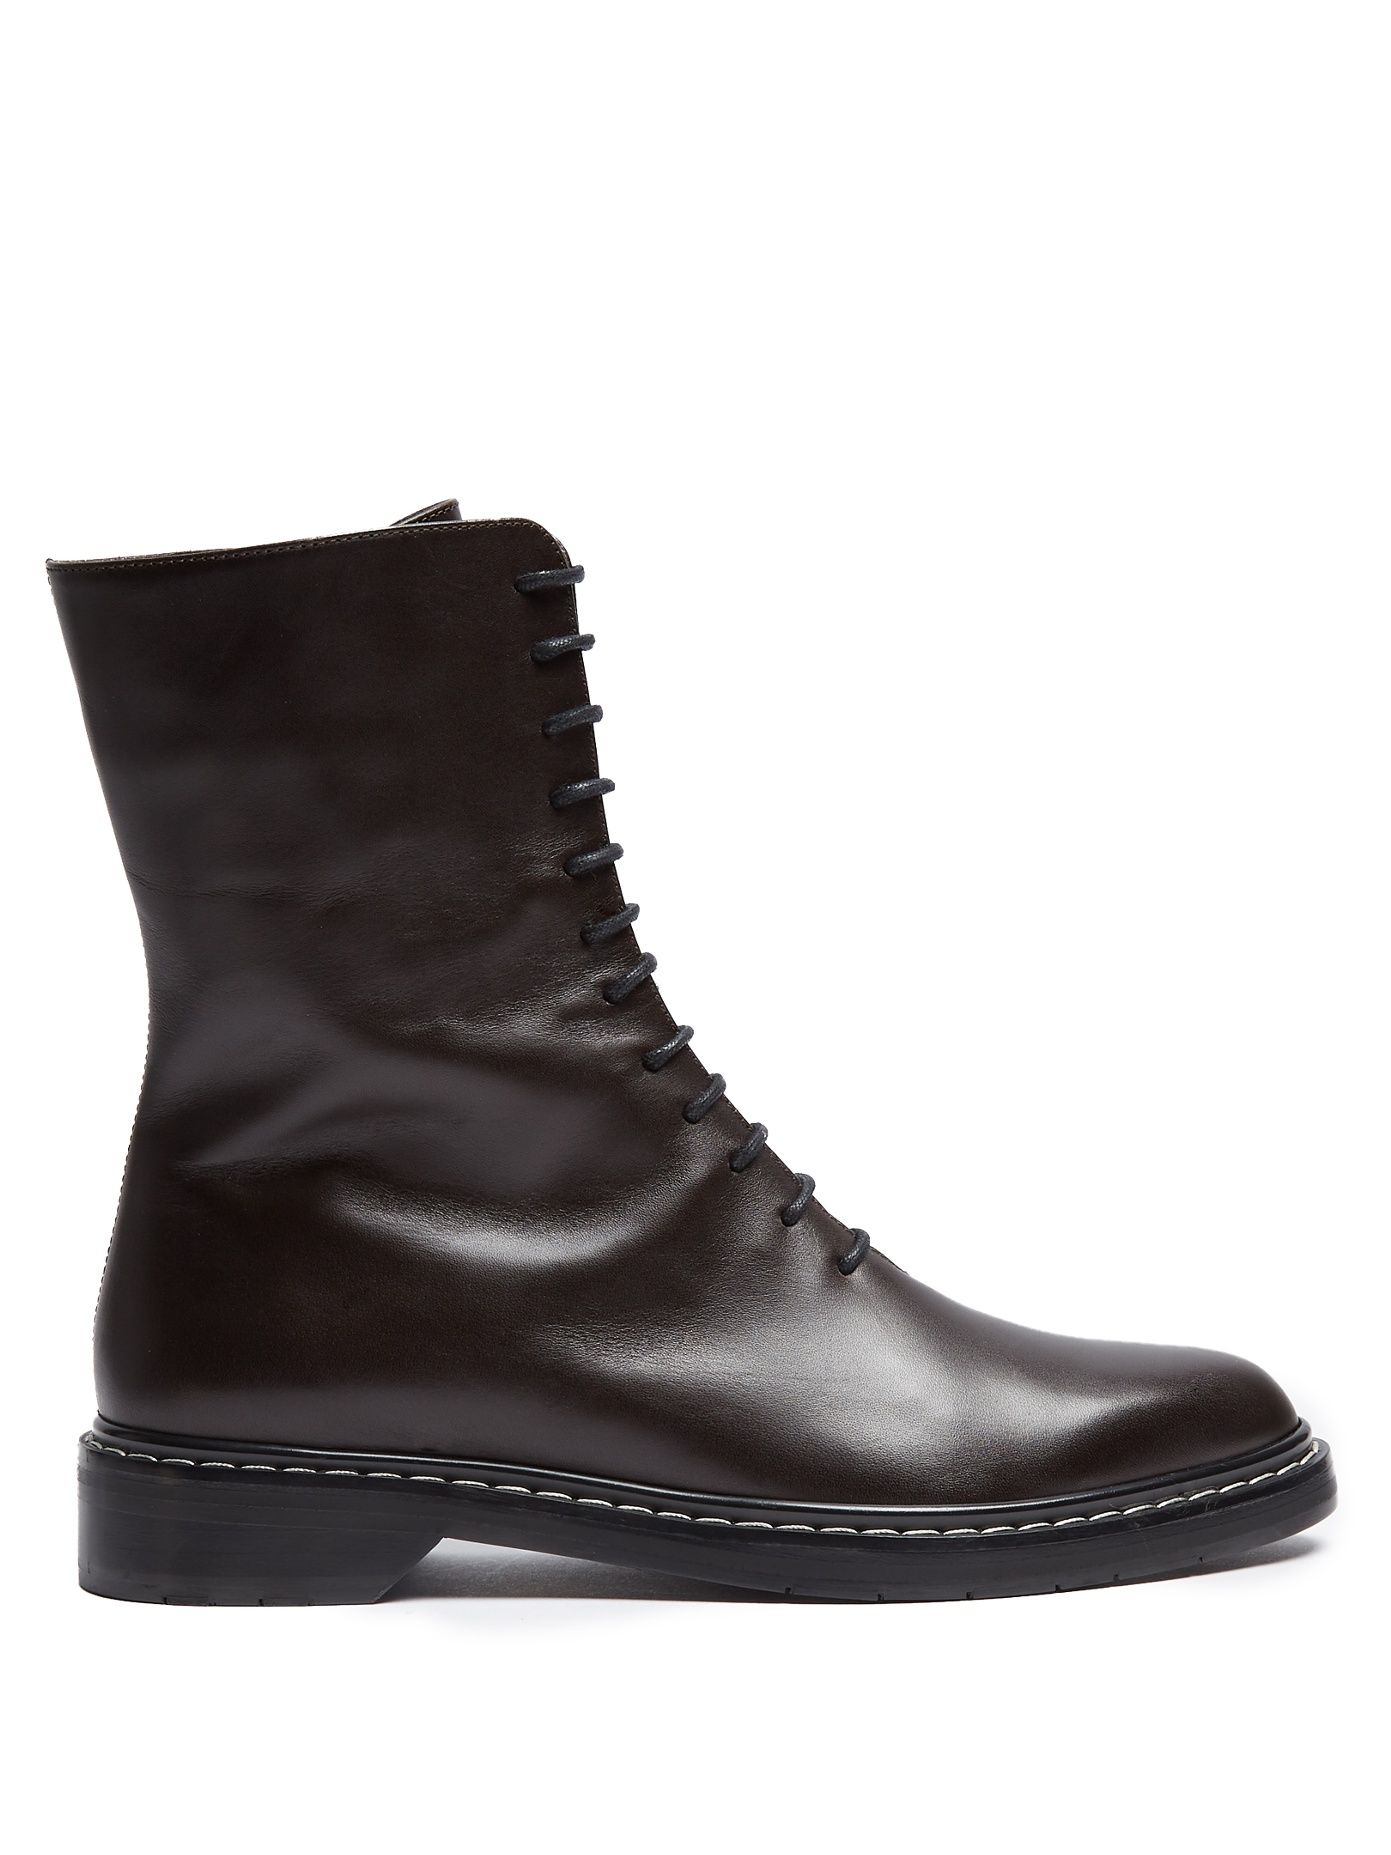 ef09cf64e771 CR s Favorite Fall Boots - 20 Designer Boots for Fall